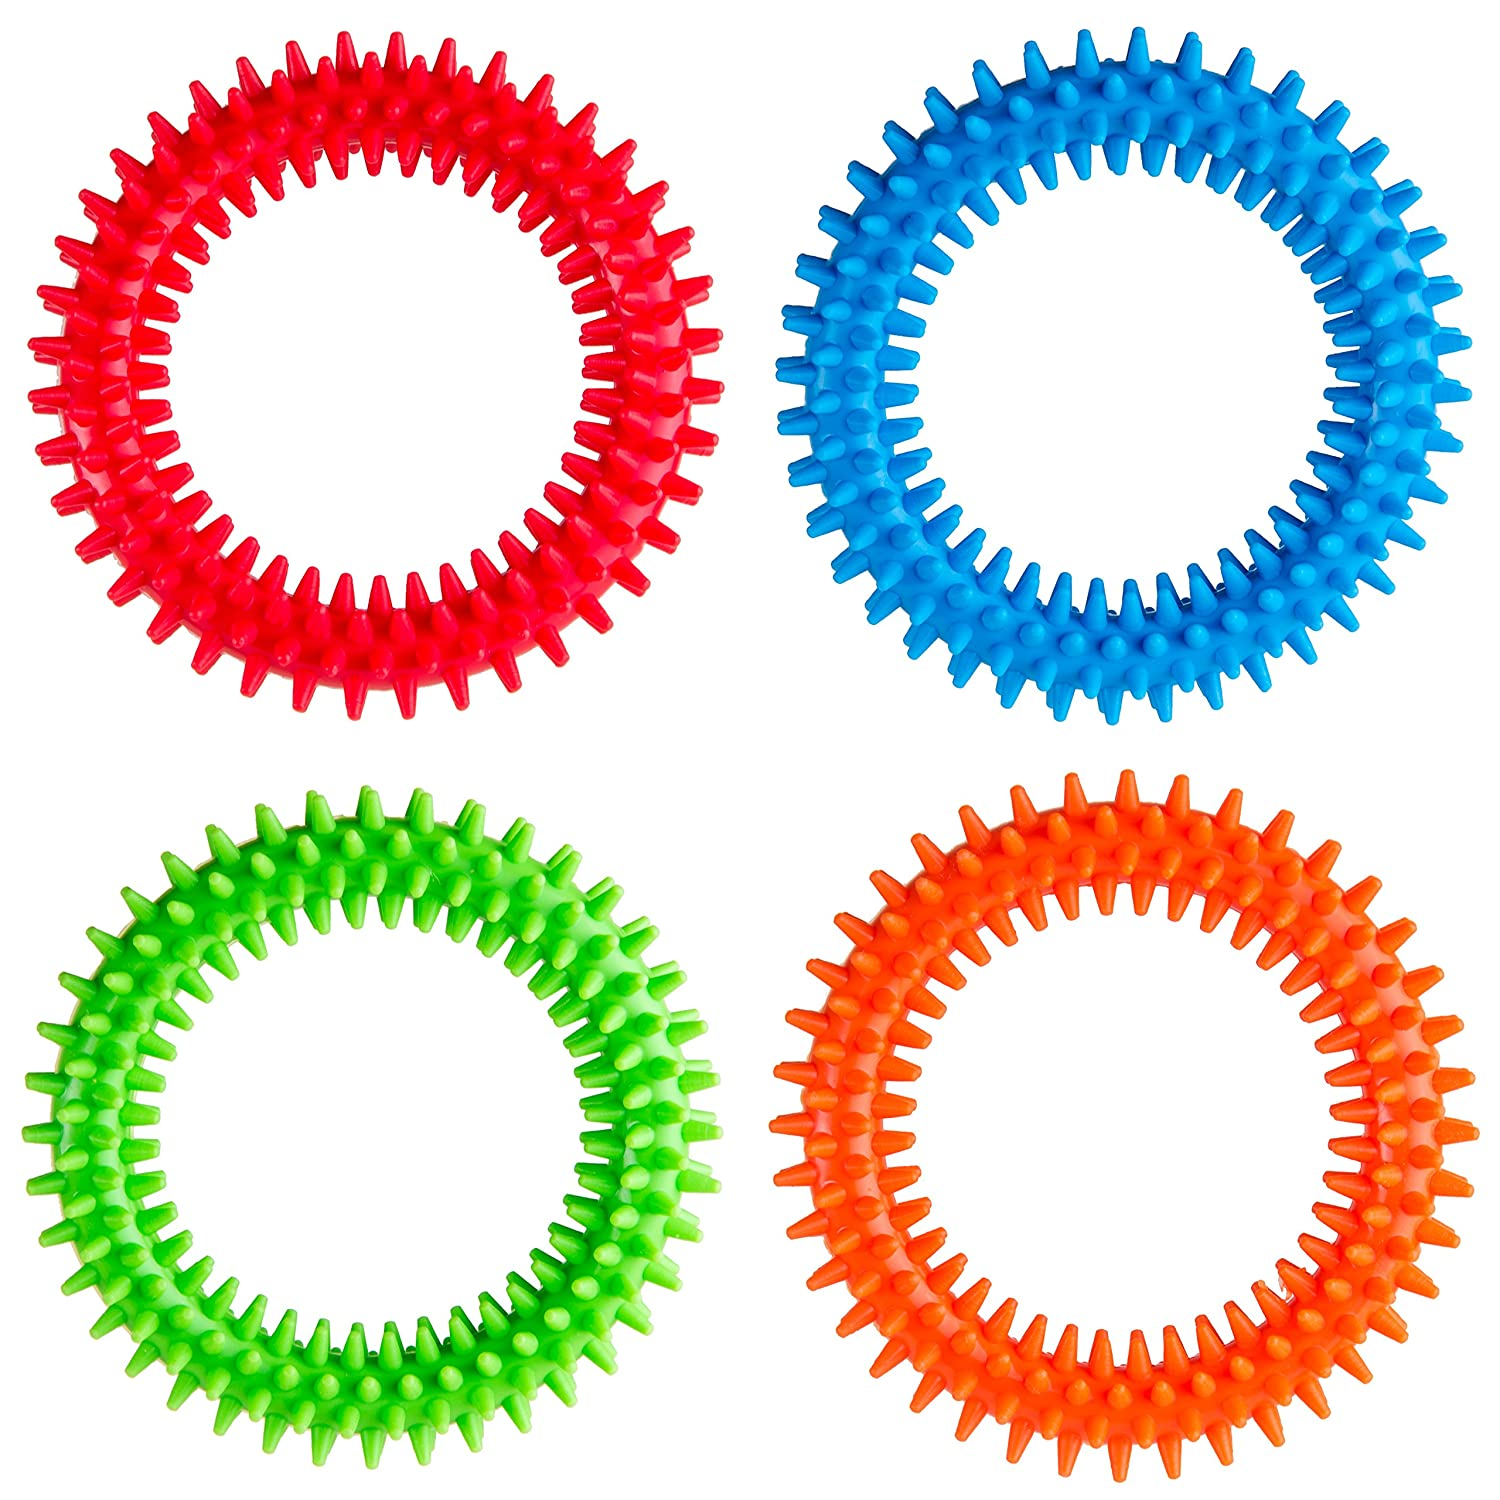 Silicone Spiky Sensory Toy Rings (4-Pack) Tactile Fidget Gadget | Quiet, Fidgeting and ADHD Support | Colorful, Stimulating Massage | Toddler, Youth Friendly Sensory Motor Aid Special Supplies SSRT4